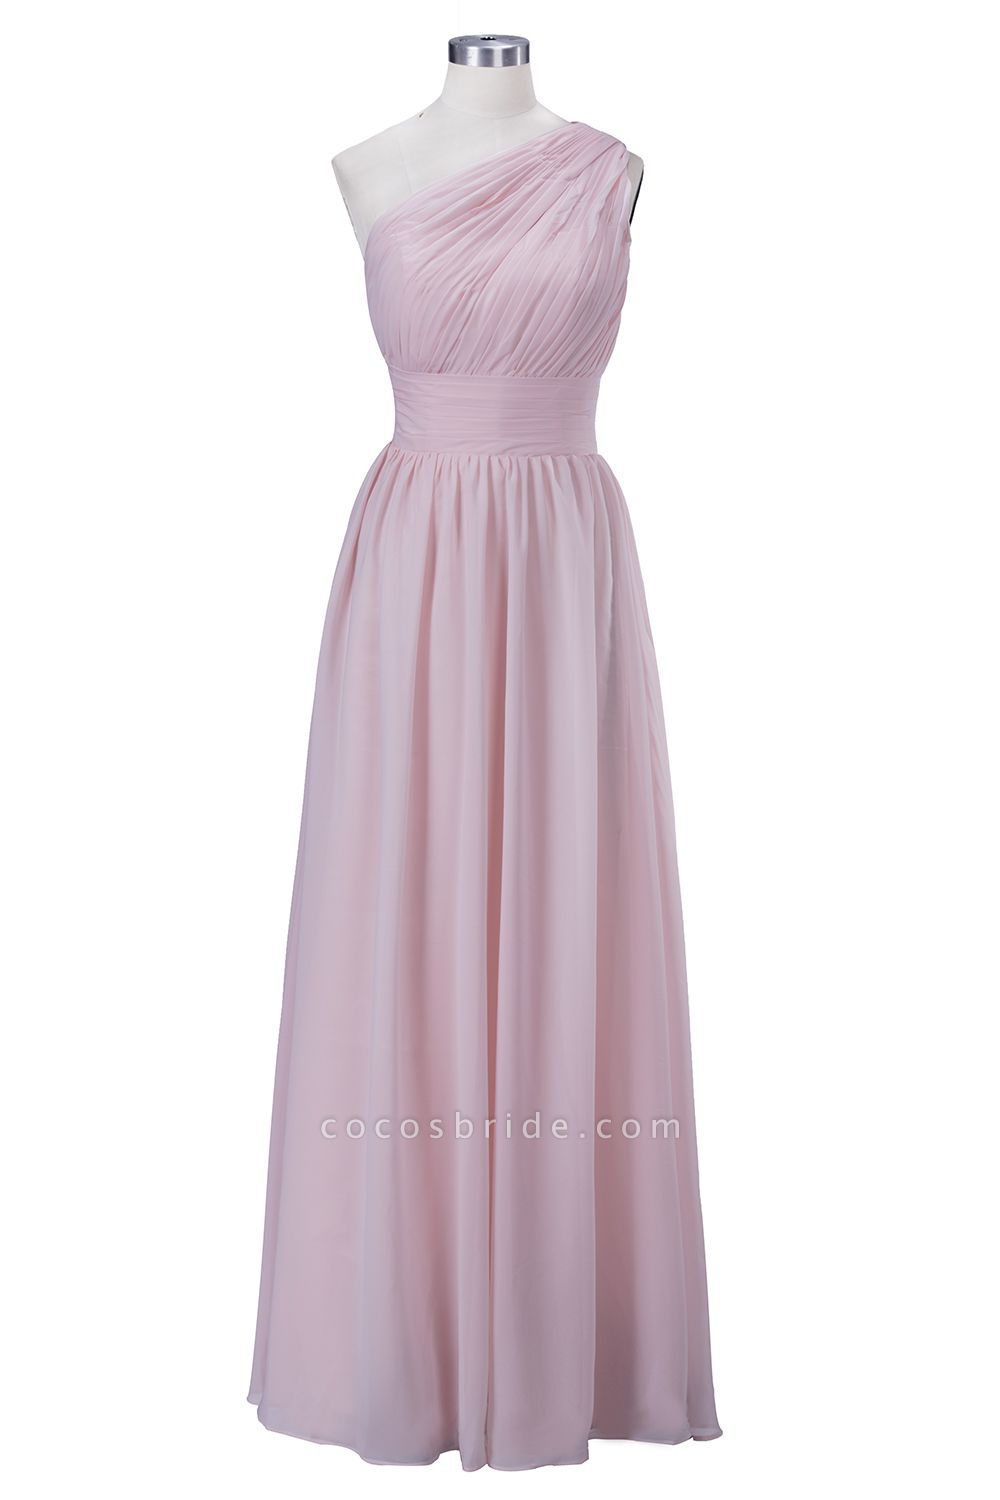 VIOLET | A-line One-shoulder Floor Length Ruffled Chiffon Bridesmaid Dresses